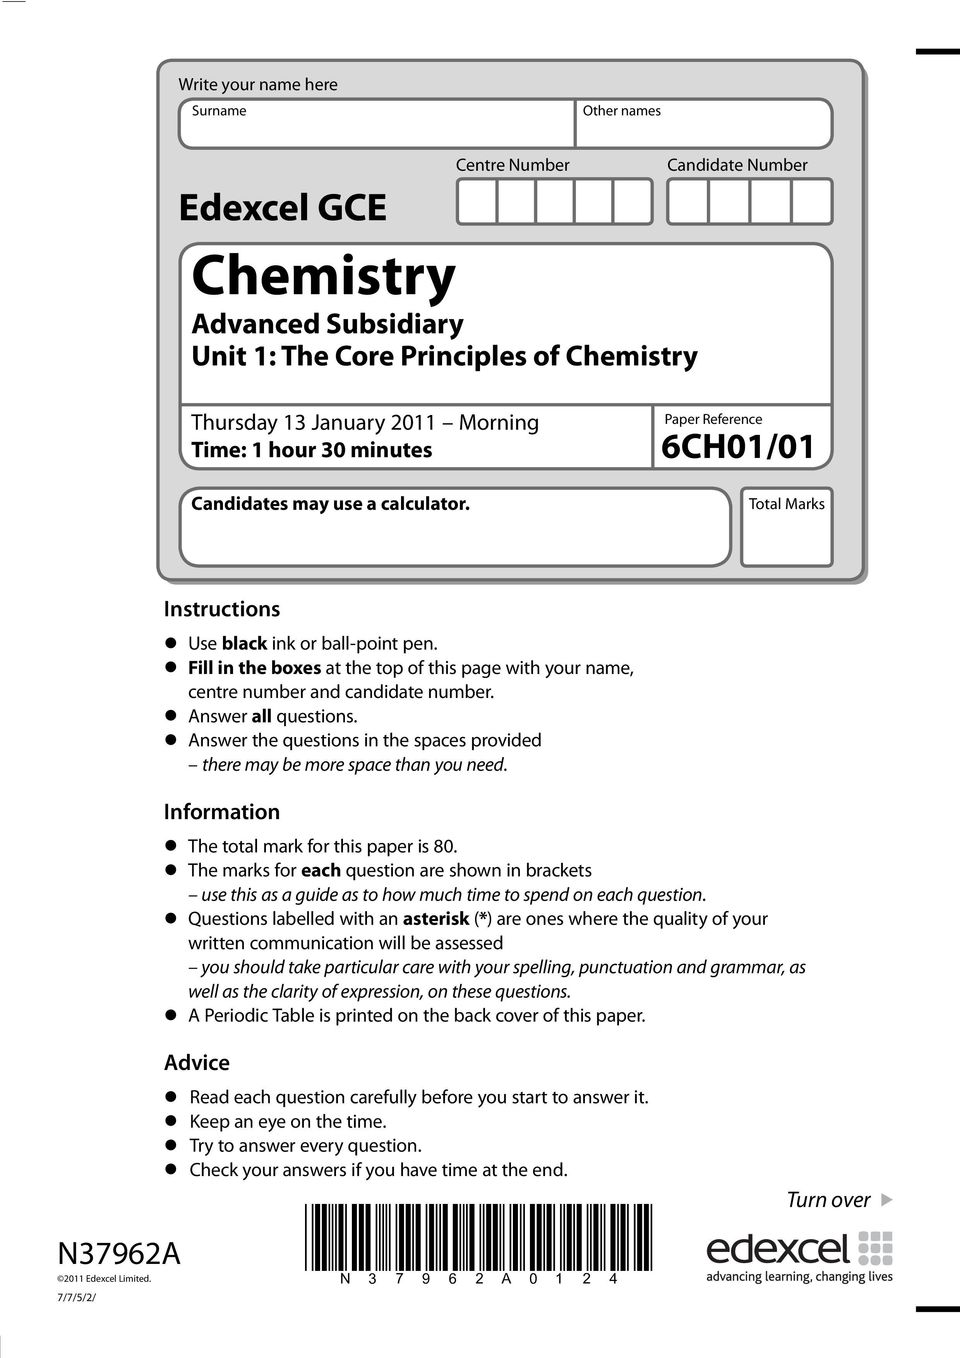 Advanced Subsidiary Unit 1: The Core Principles of Chemistry - PDF